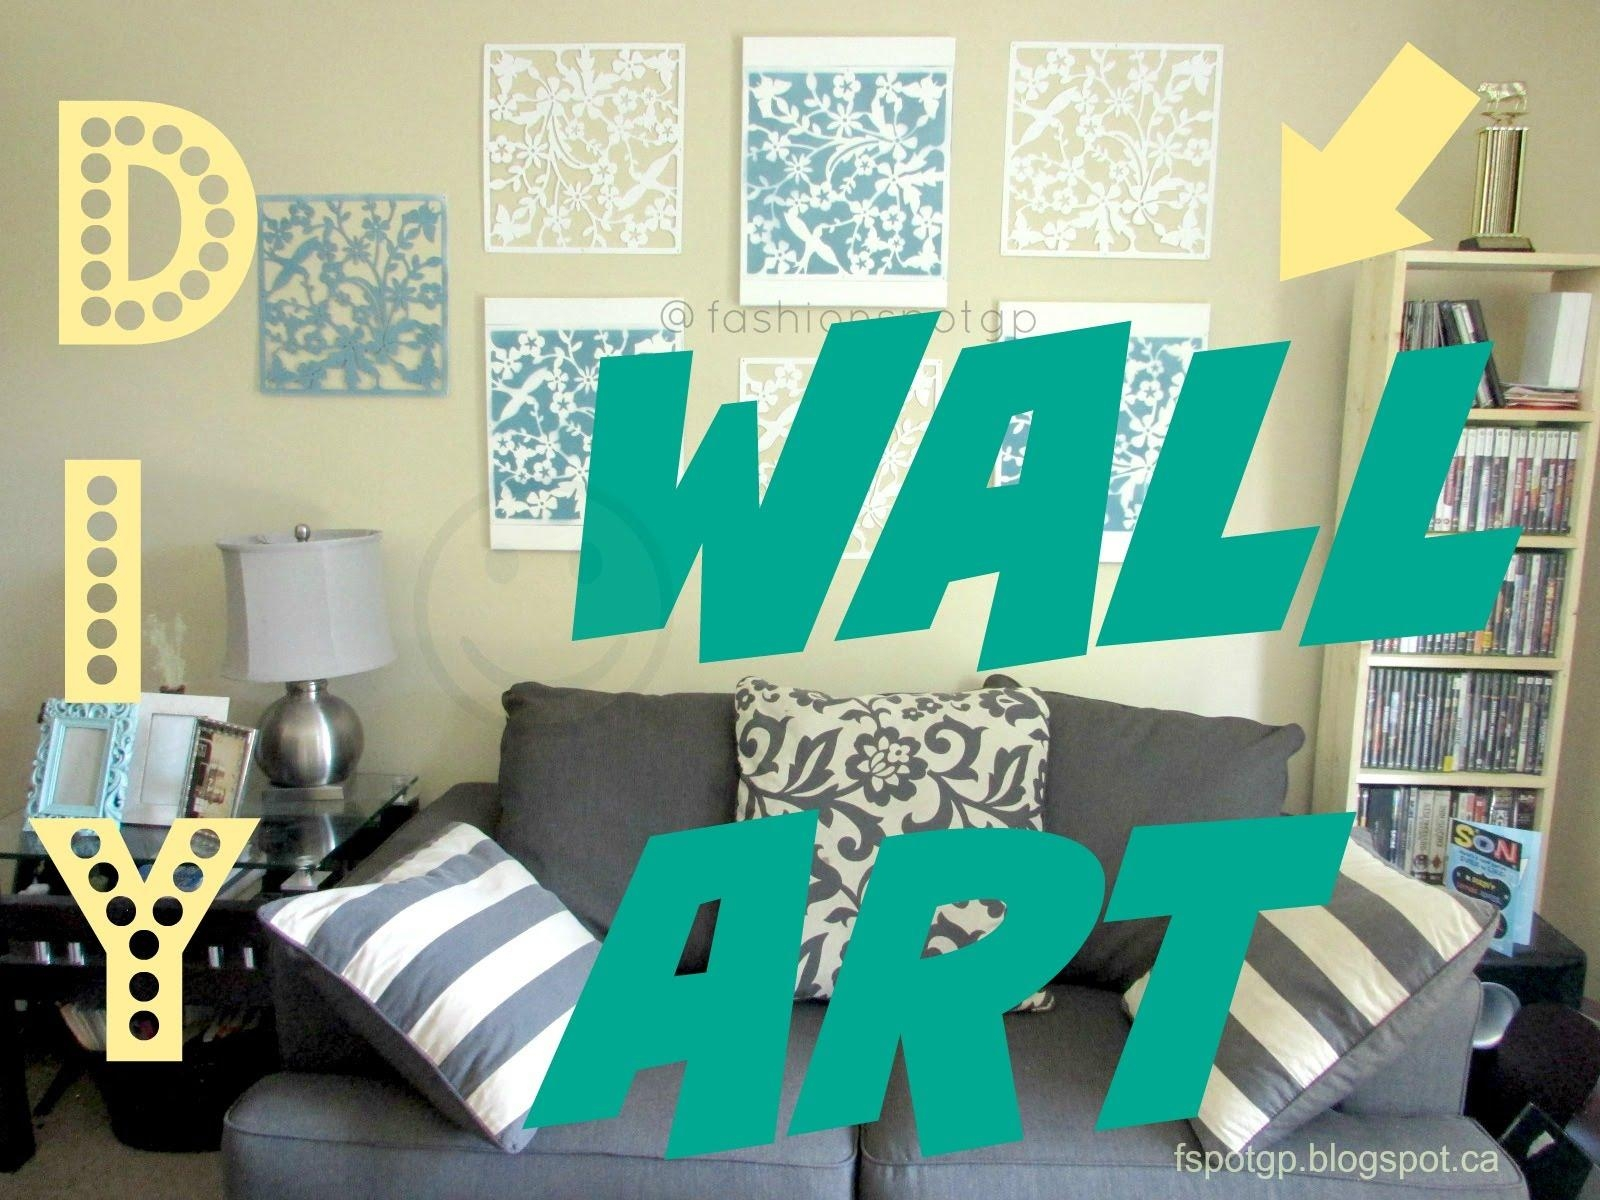 Cheap Wall Art Ideas For Home Decorating – Home And Interior With Regard To Cheap Wall Art And Decor (View 6 of 20)